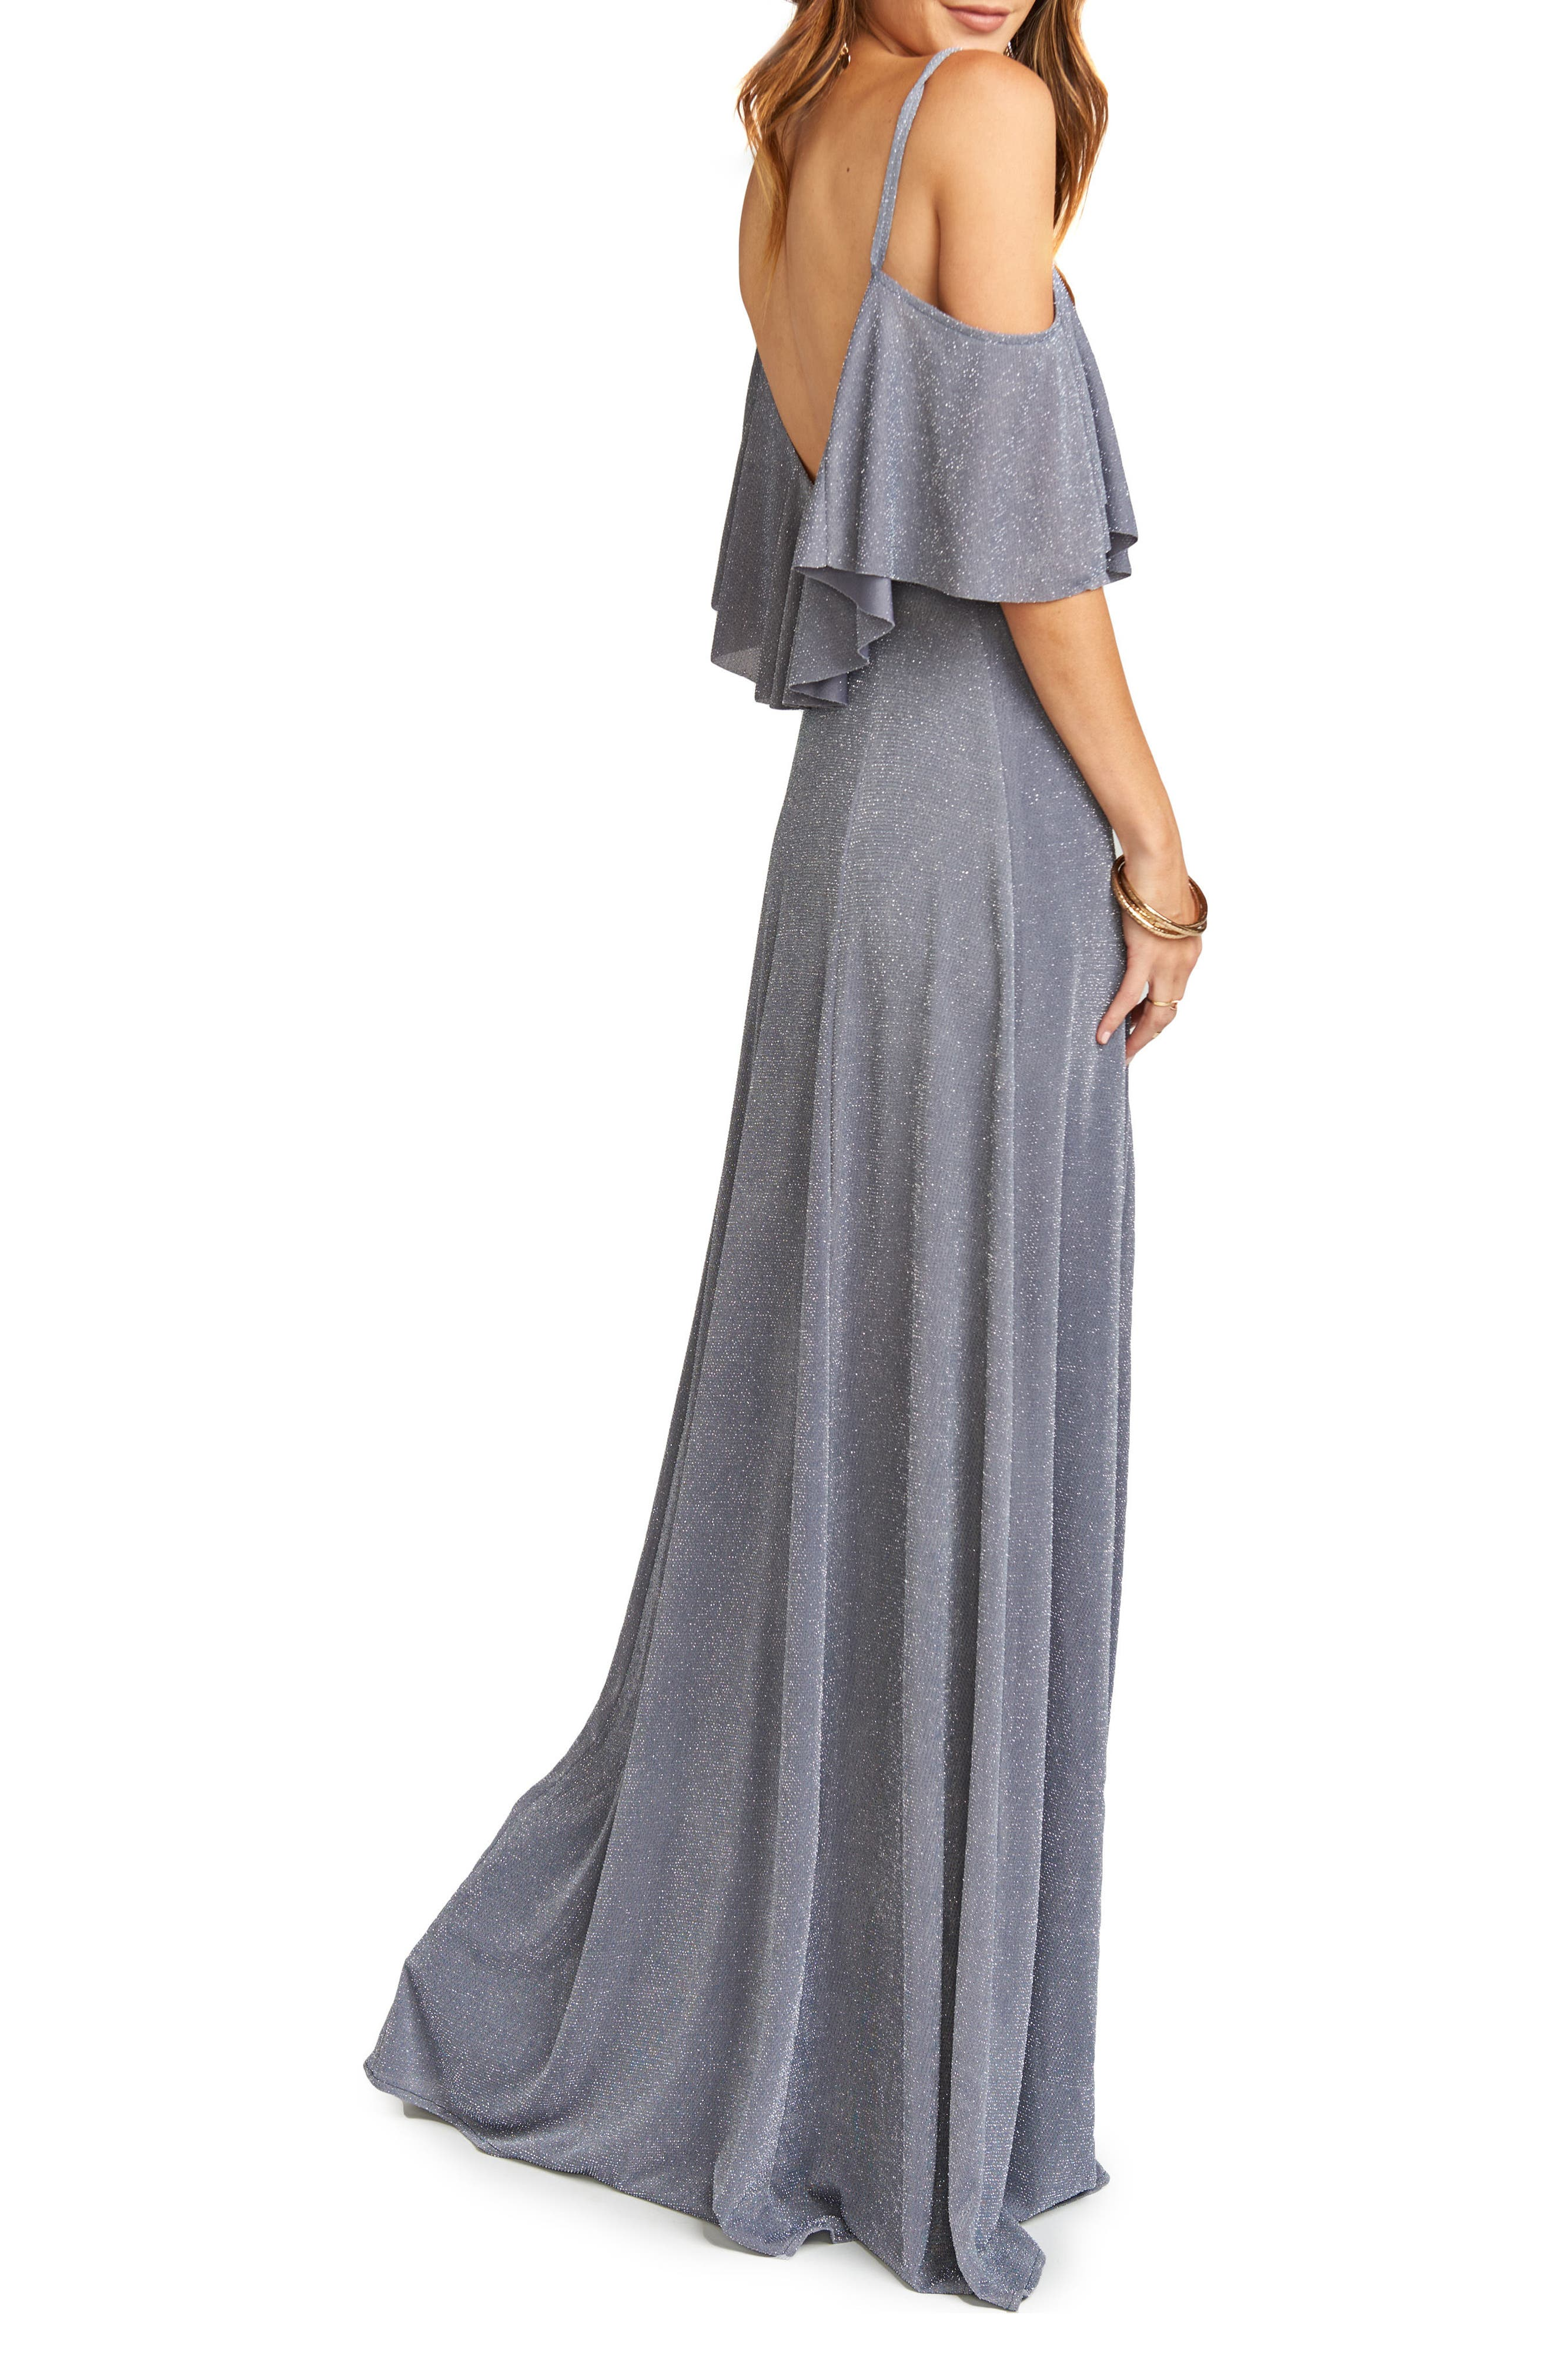 Renee Ruffle Gown,                             Alternate thumbnail 2, color,                             030